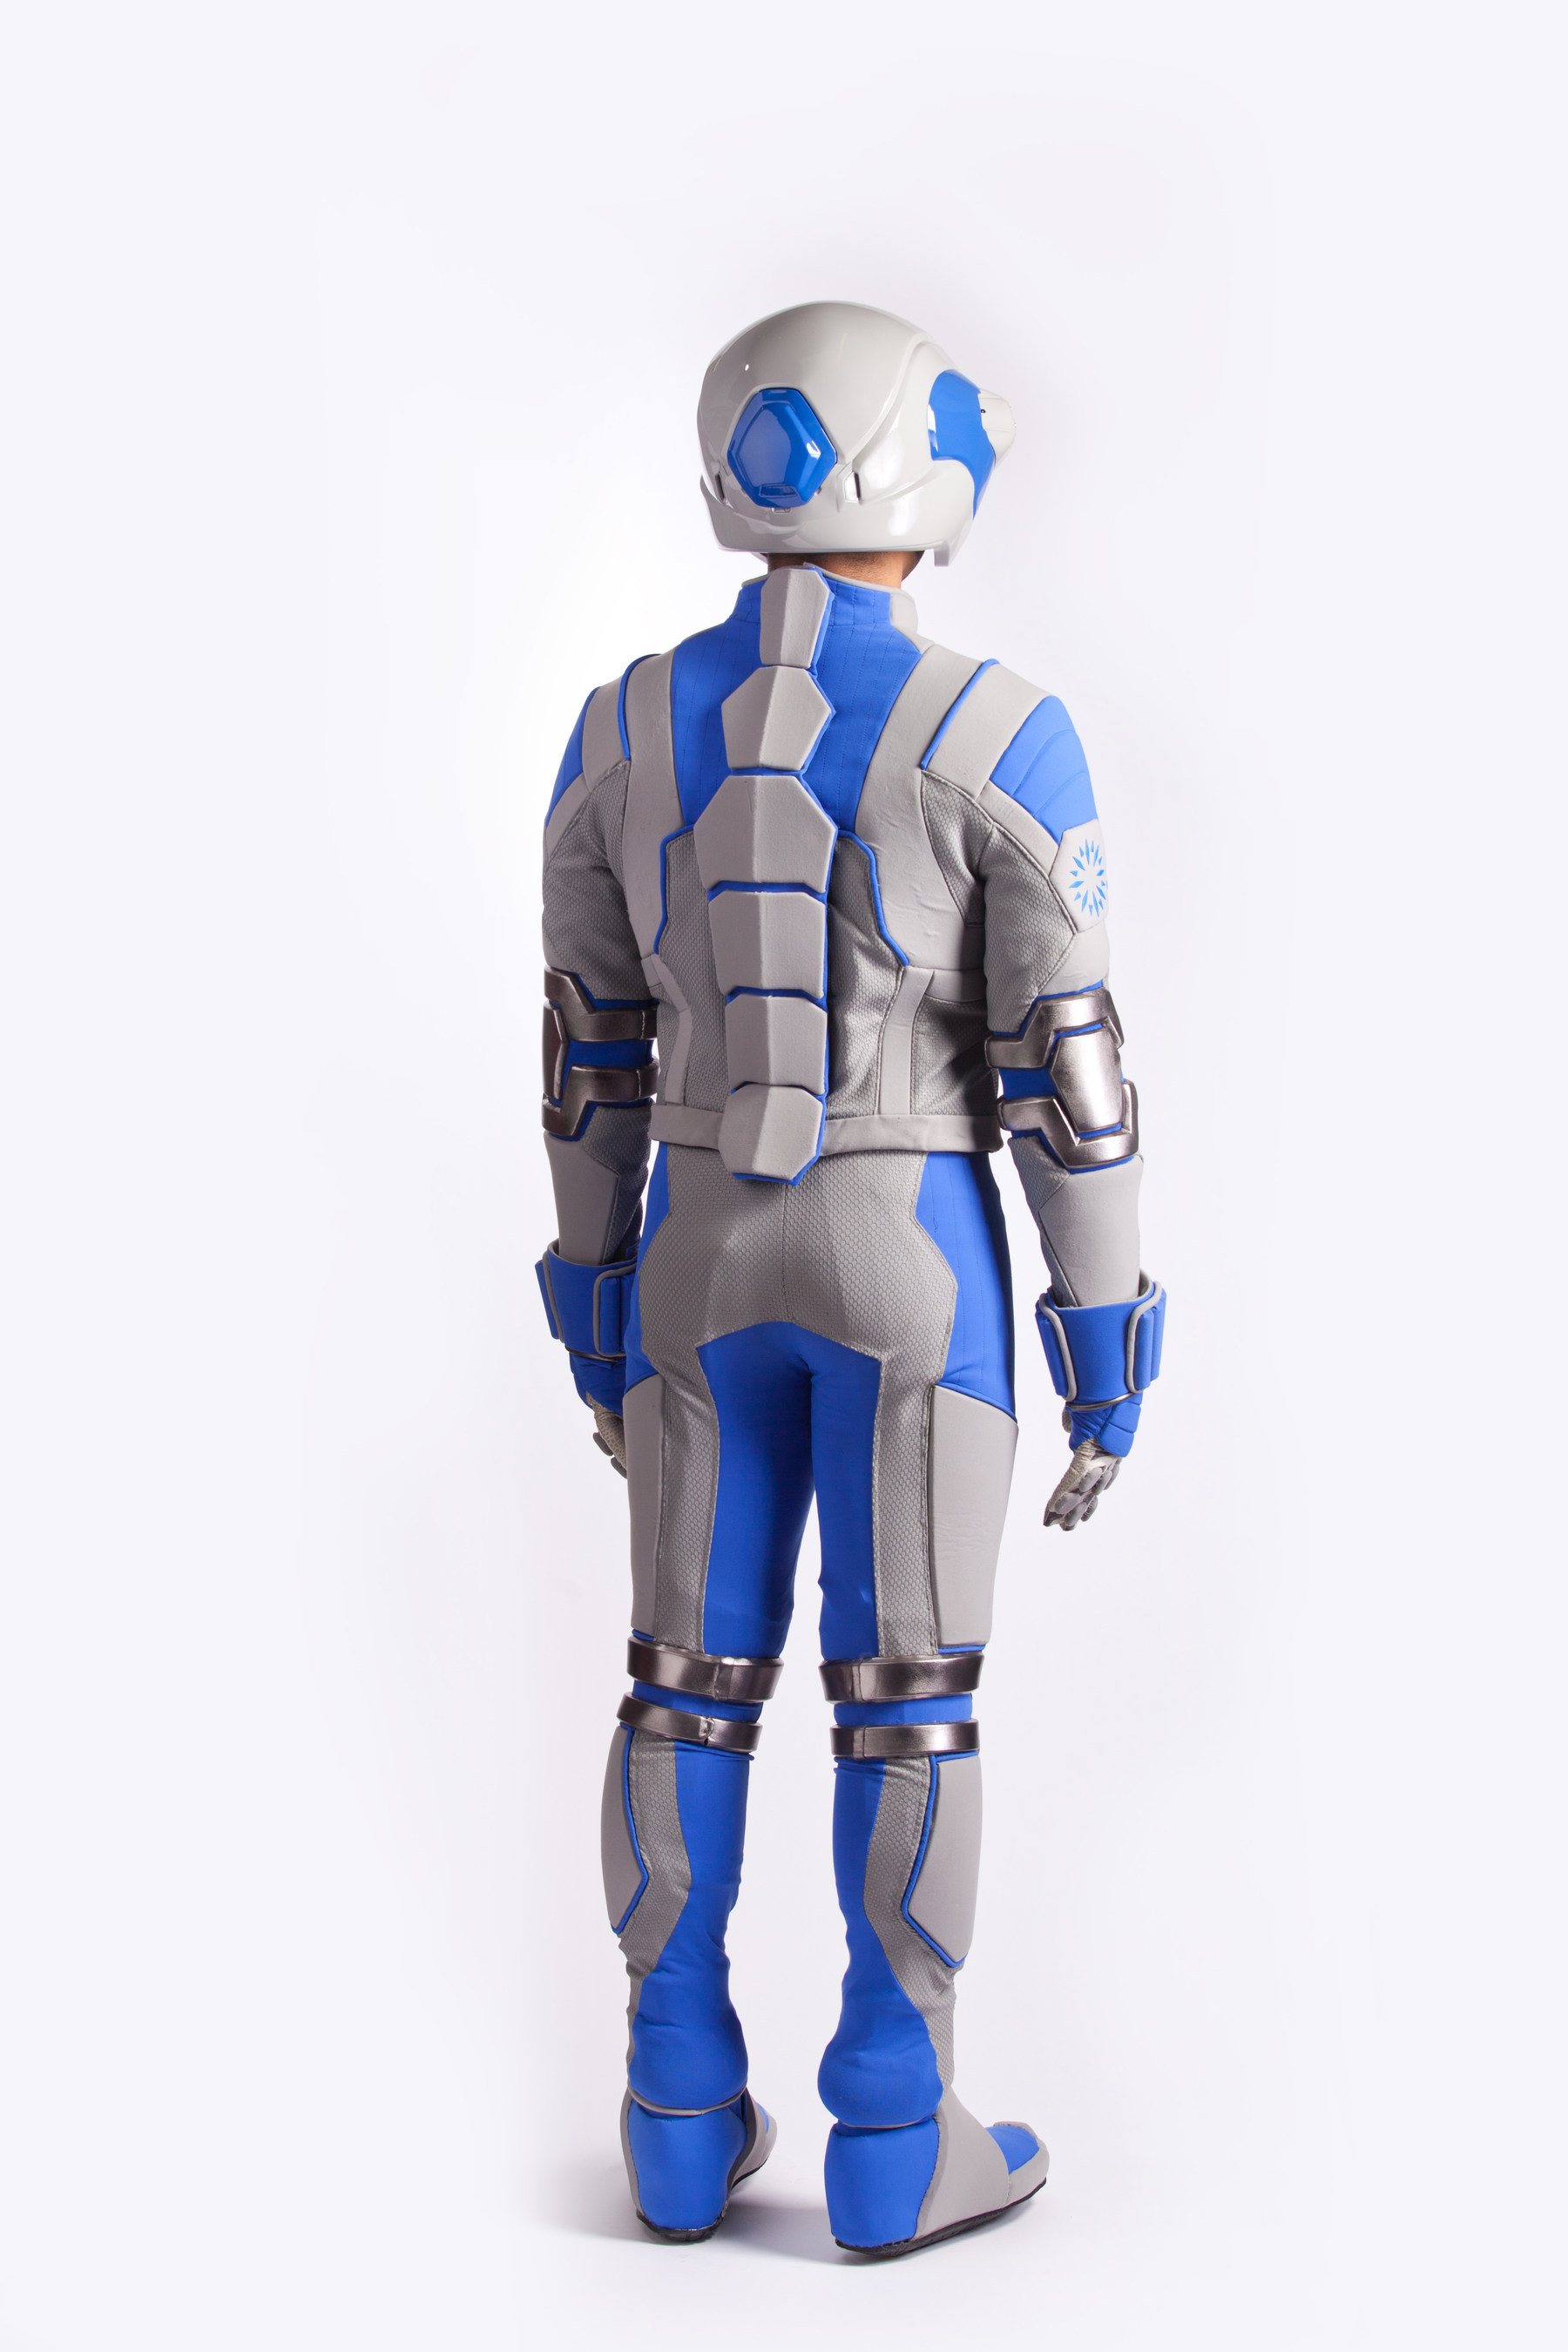 Back view of the Genworth R70, a first of its kind, state-of-the-art age simulation suit that will help raise awareness about the need for long term care planning and educate the public on the physical effects associated with aging. The Genworth R70 provides consumers with a powerful experience, allowing them to understand and empathize with what it feels like to grow old.  Genworth unveiled the suit on Thursday, Nov. 20, 2014, at the Social Innovation Summit in Silicon Valley, California.